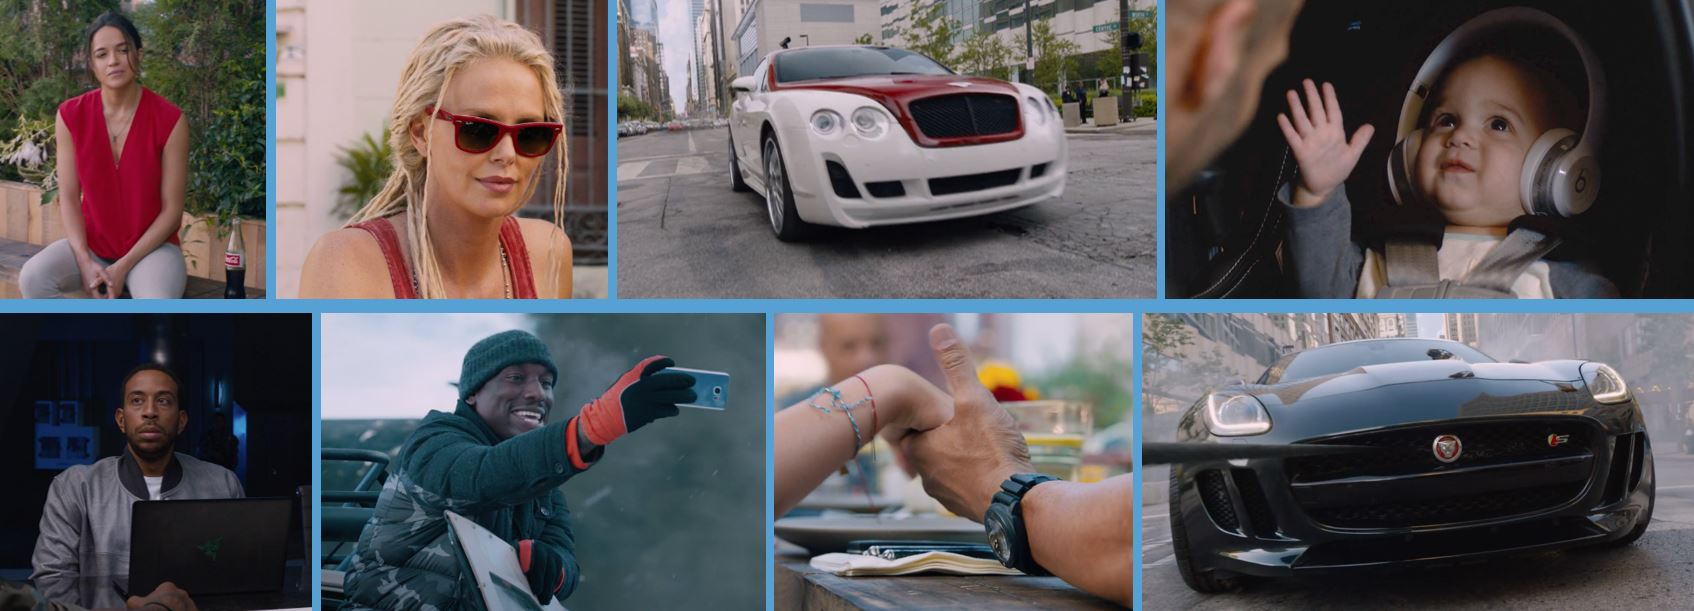 the fate of the furious fast and furious movie product placement concave brand tracking coca cola coke ray-ban bentley beats by dre razer samsung panerai jaguar